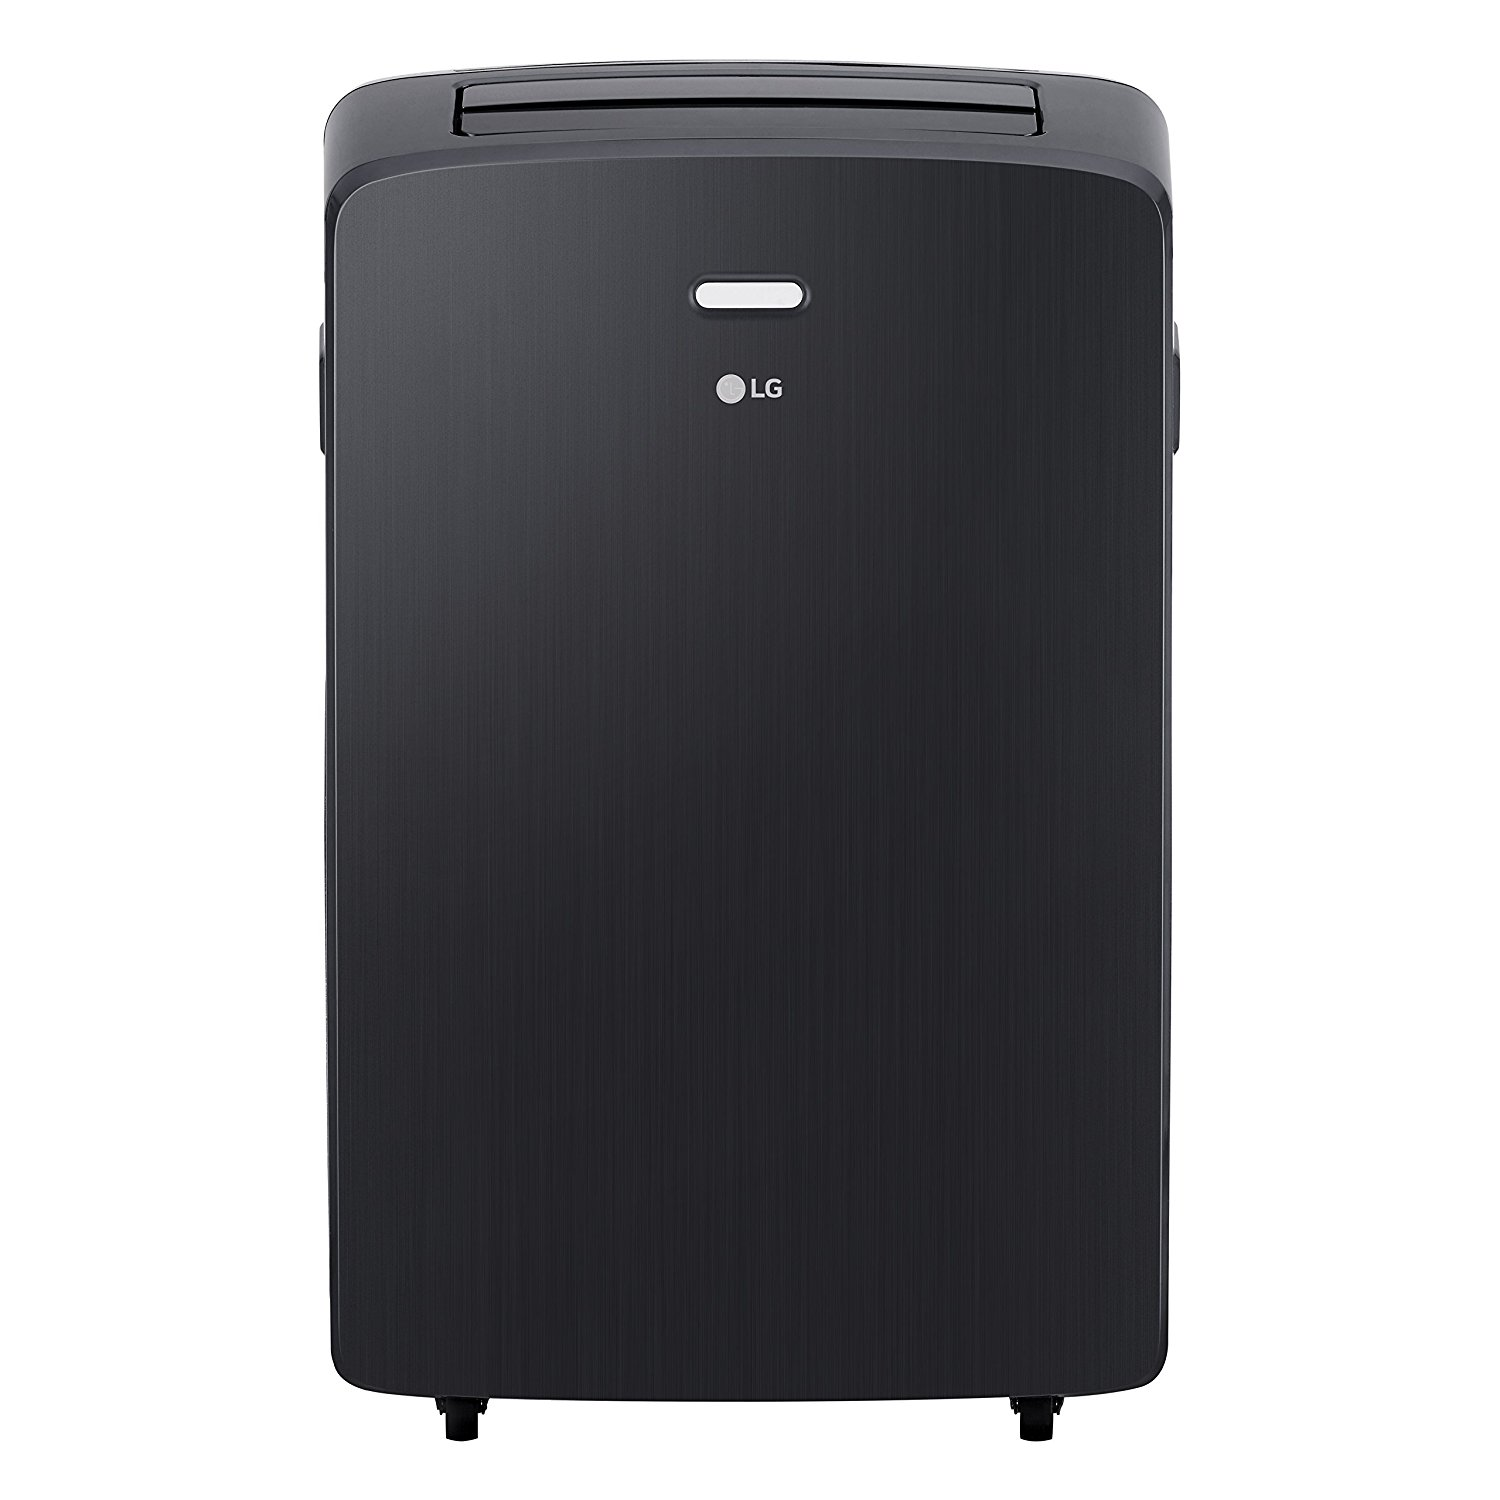 LG LP1217GSR 12,000 BTU 115V Portable Air Conditioner Factory Recondit eba2d2c4cc10